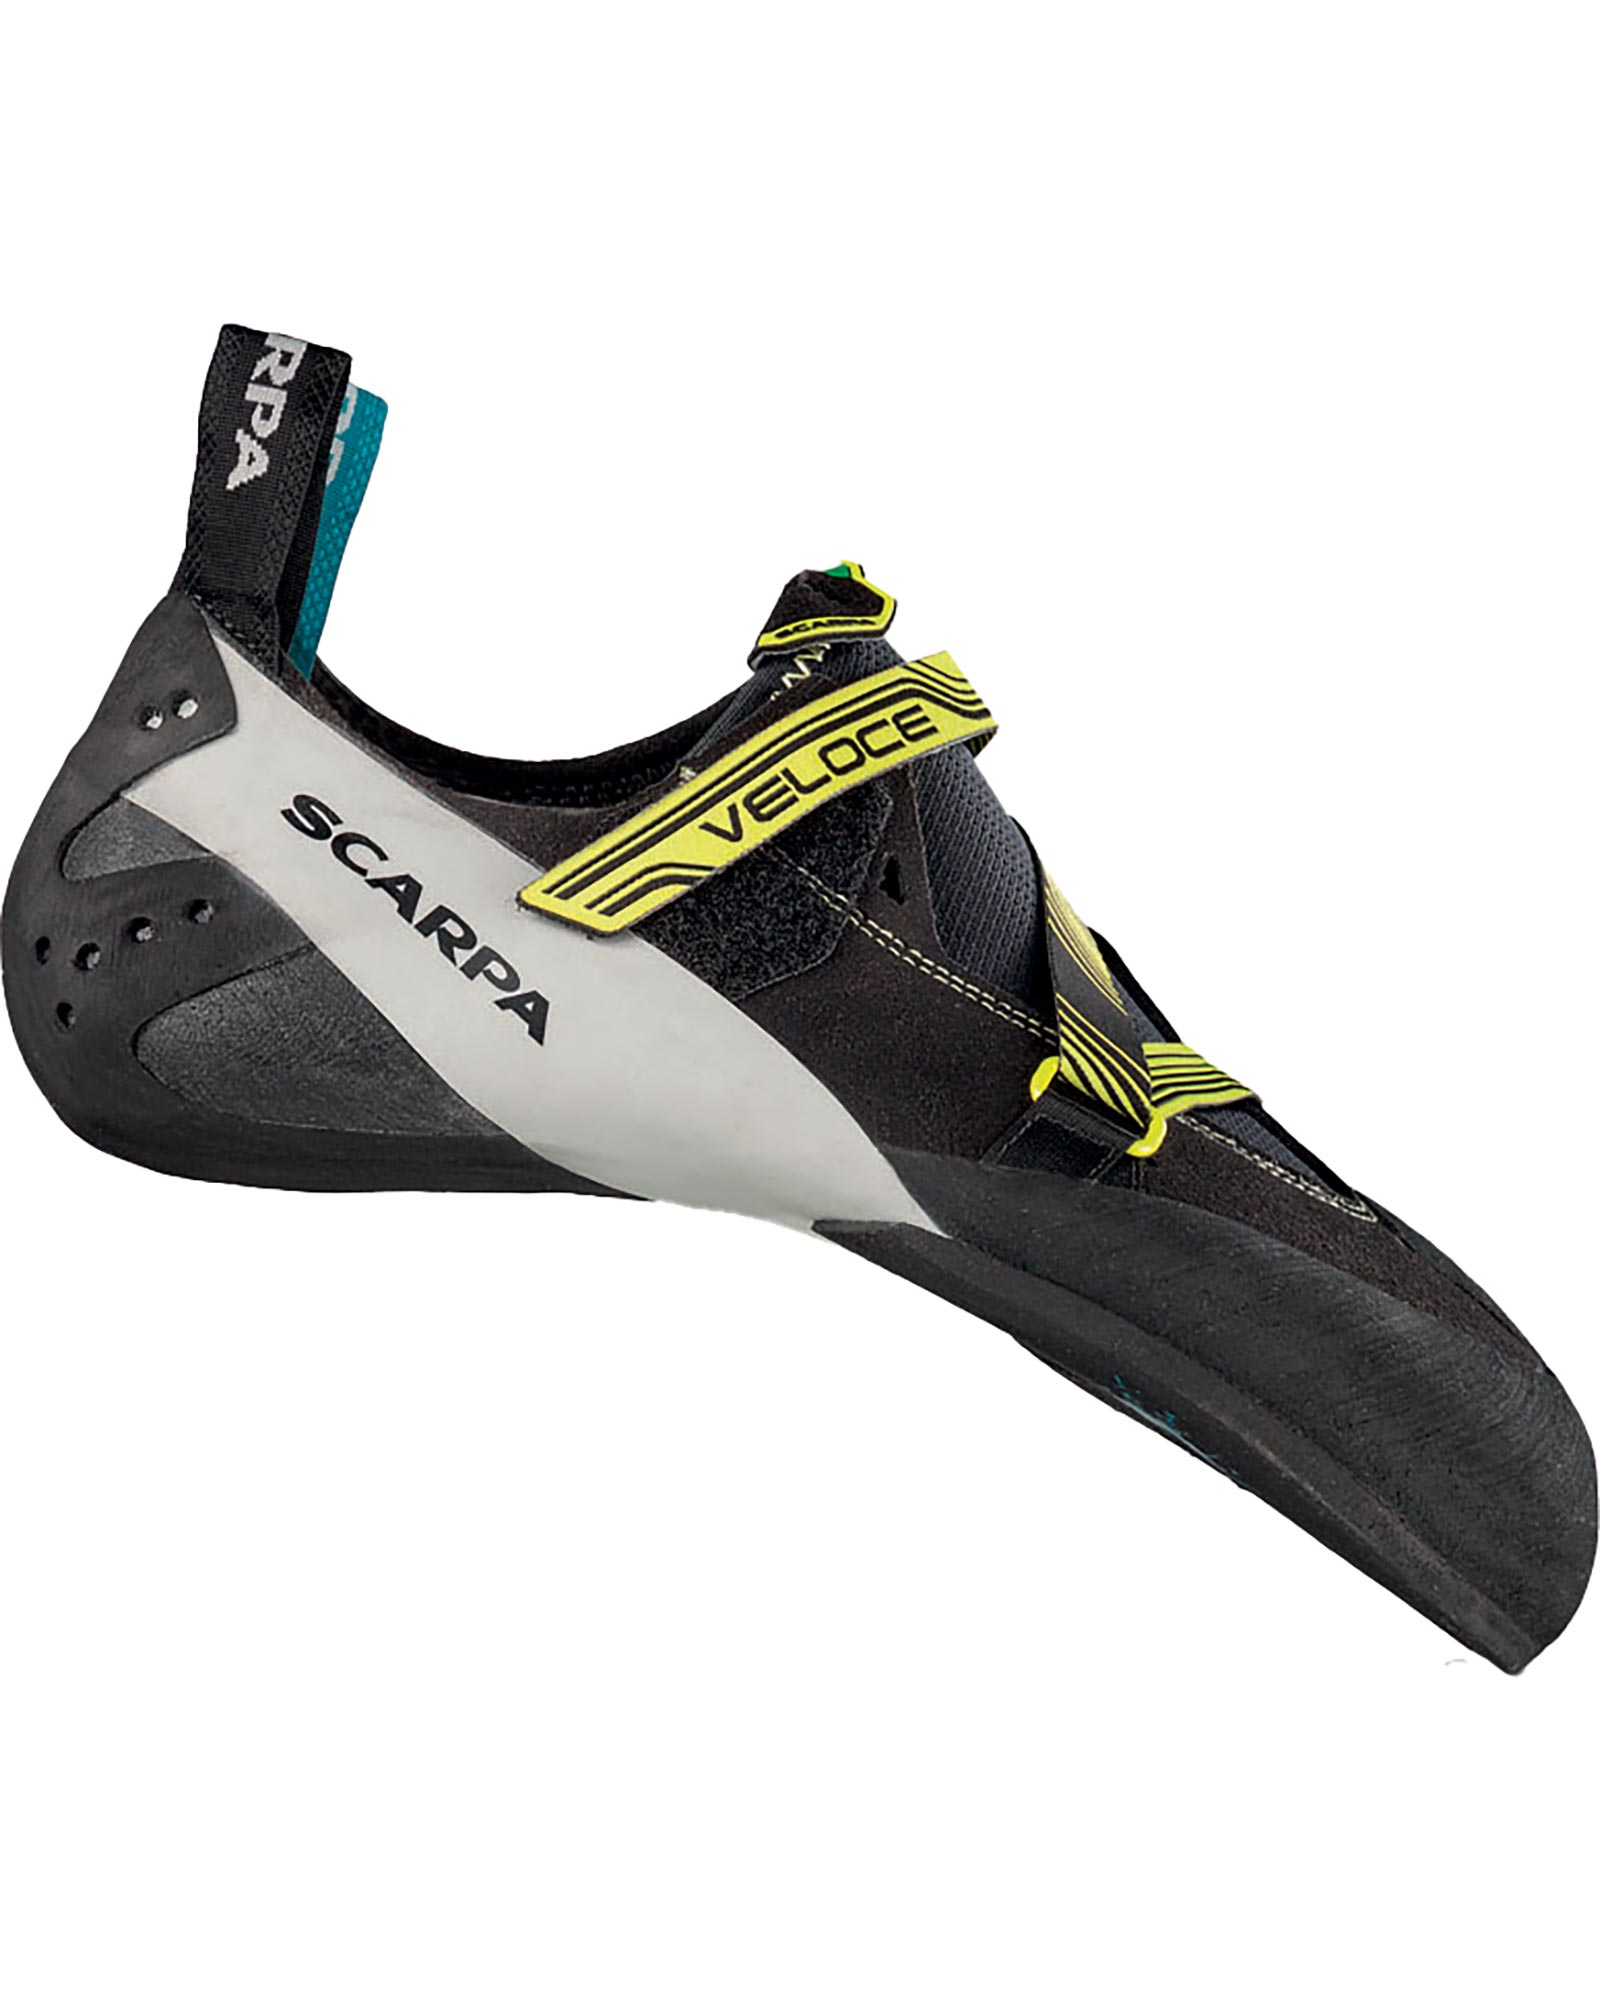 Scarpa Mens Veloce Climbing Shoes